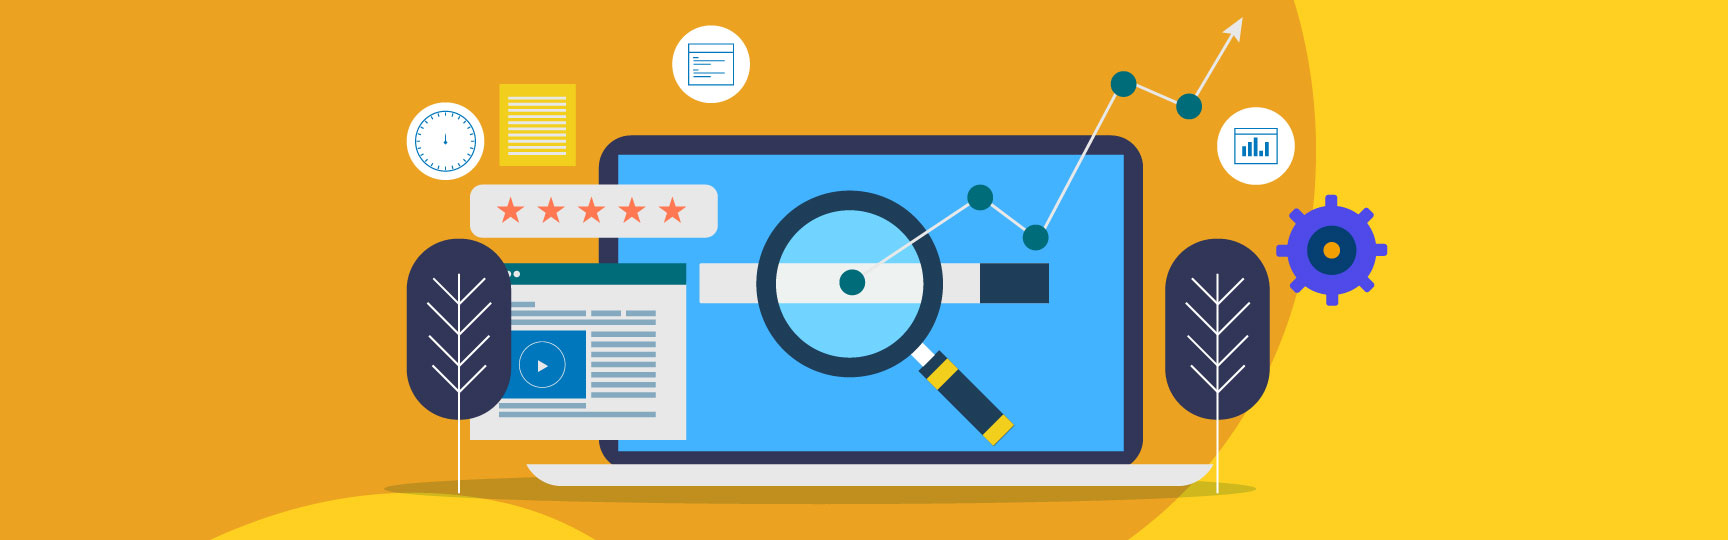 How To Improve Your Websites Search Ranking